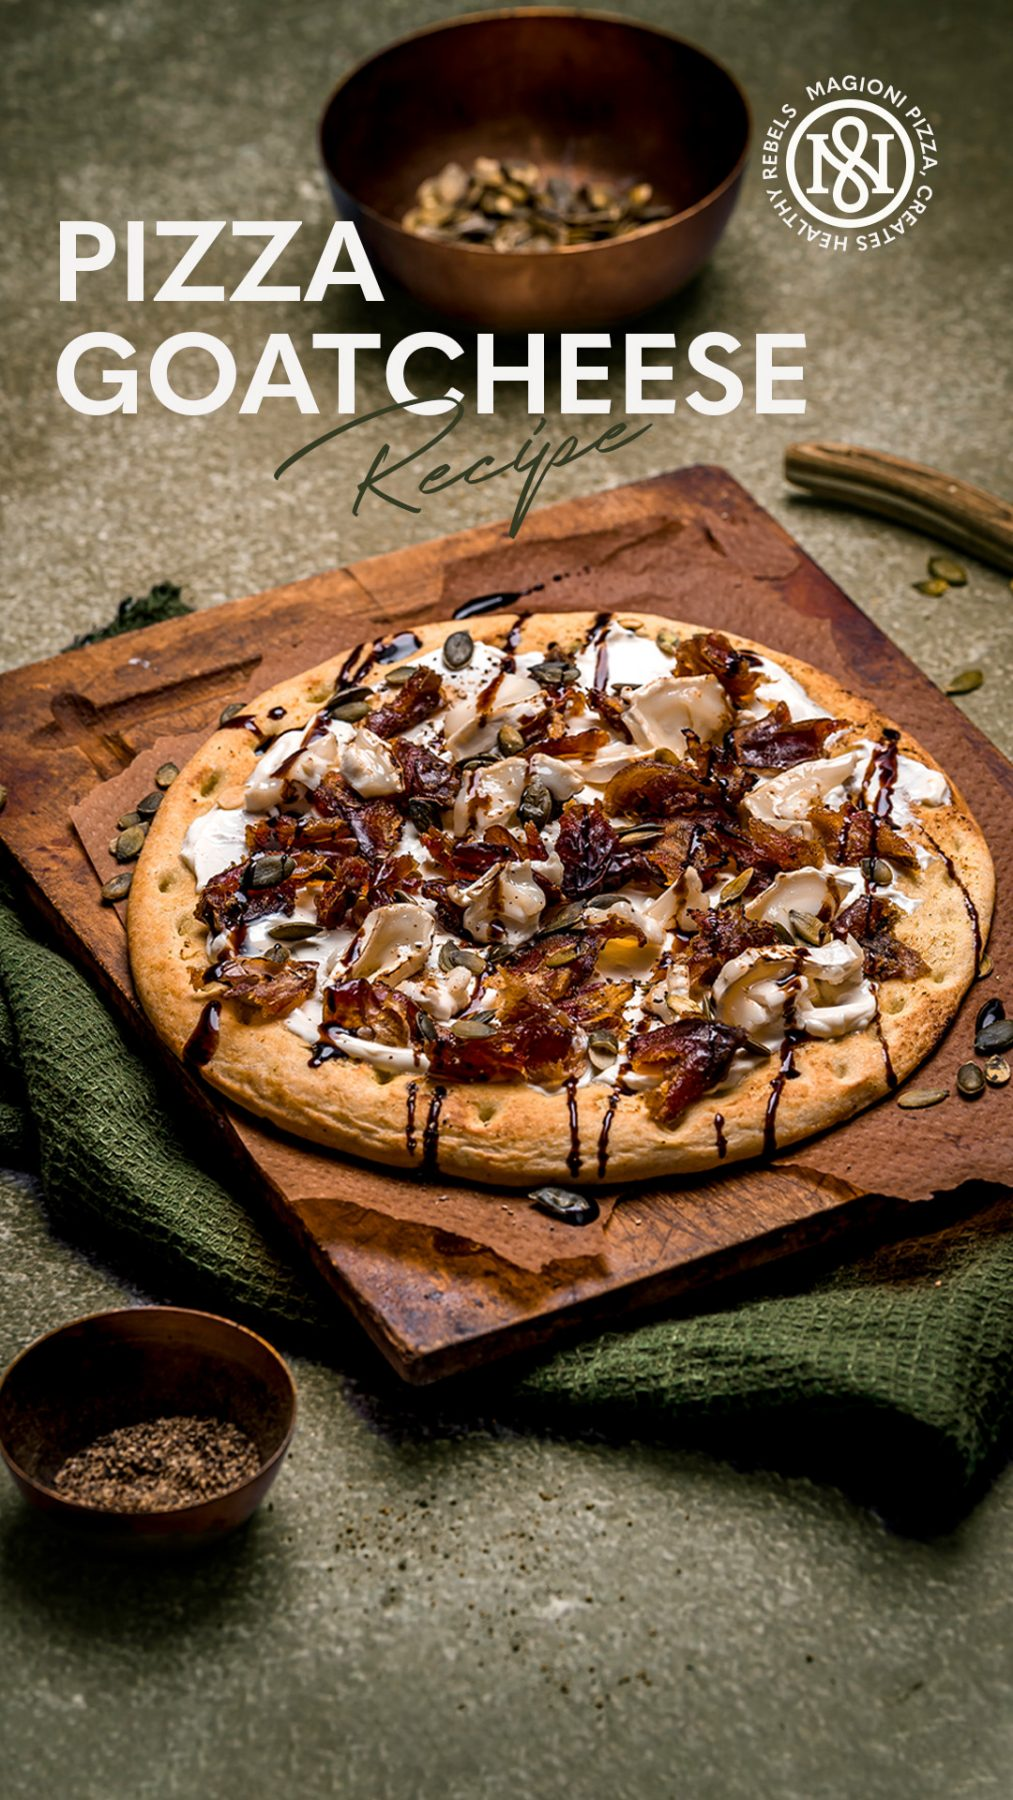 pizza goatcheese